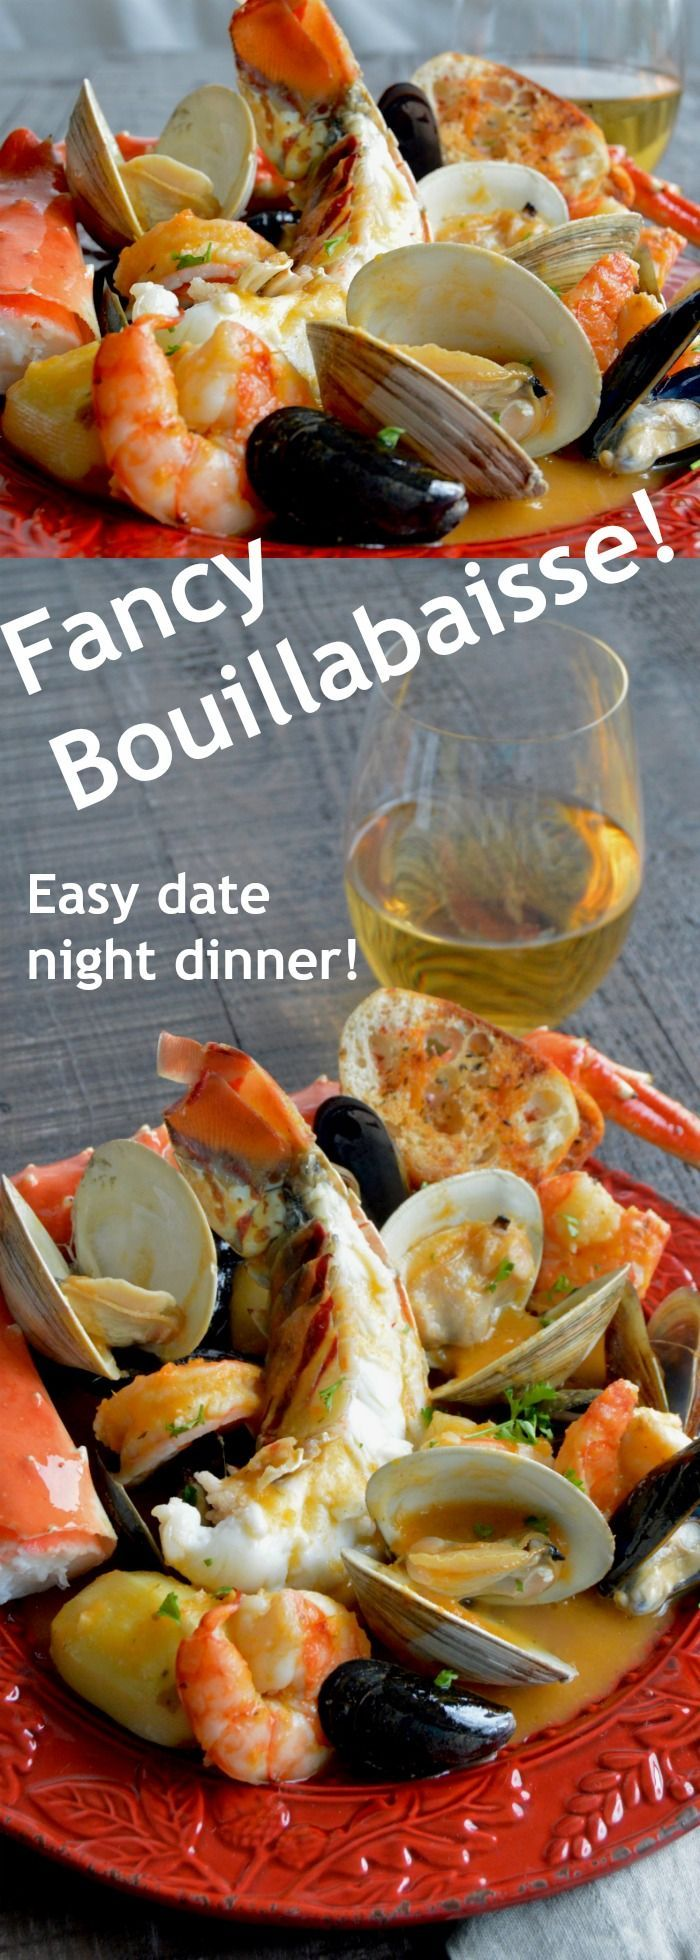 Fancy Shellfish Bouillebaisse shellfish, lobster crab, shrimp mussels and crab in a very flavorful homemade broth that can be on the table in less than 45 minutes! via @westviamidwest